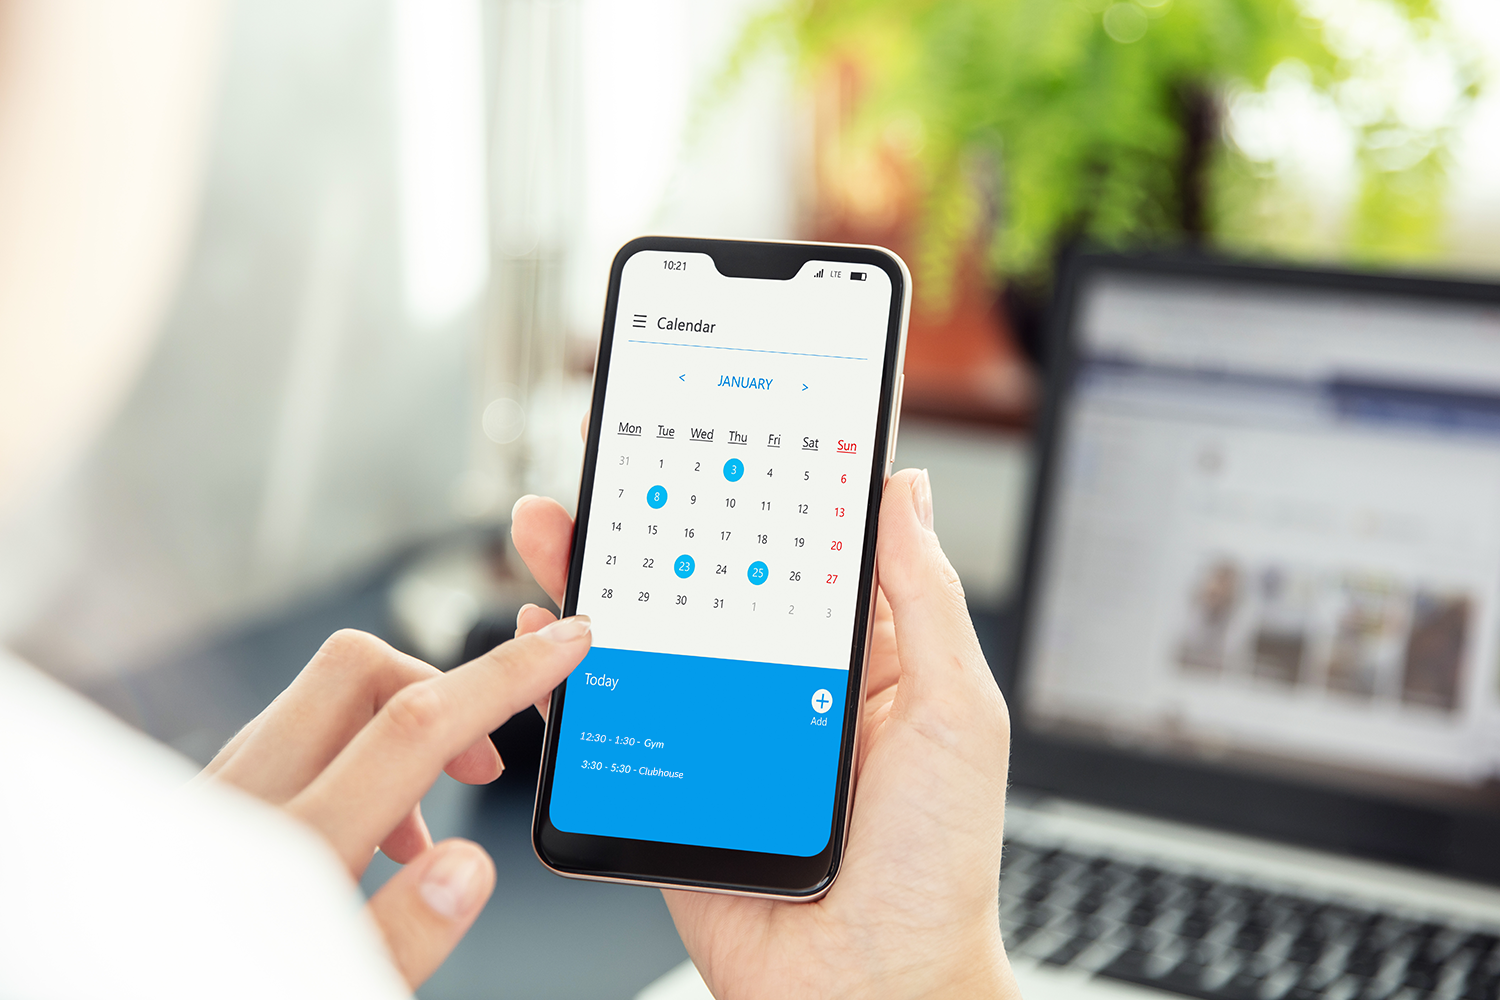 A person on their phone scheduling time to use the apartment's amenities with Respage's amenity scheduler.